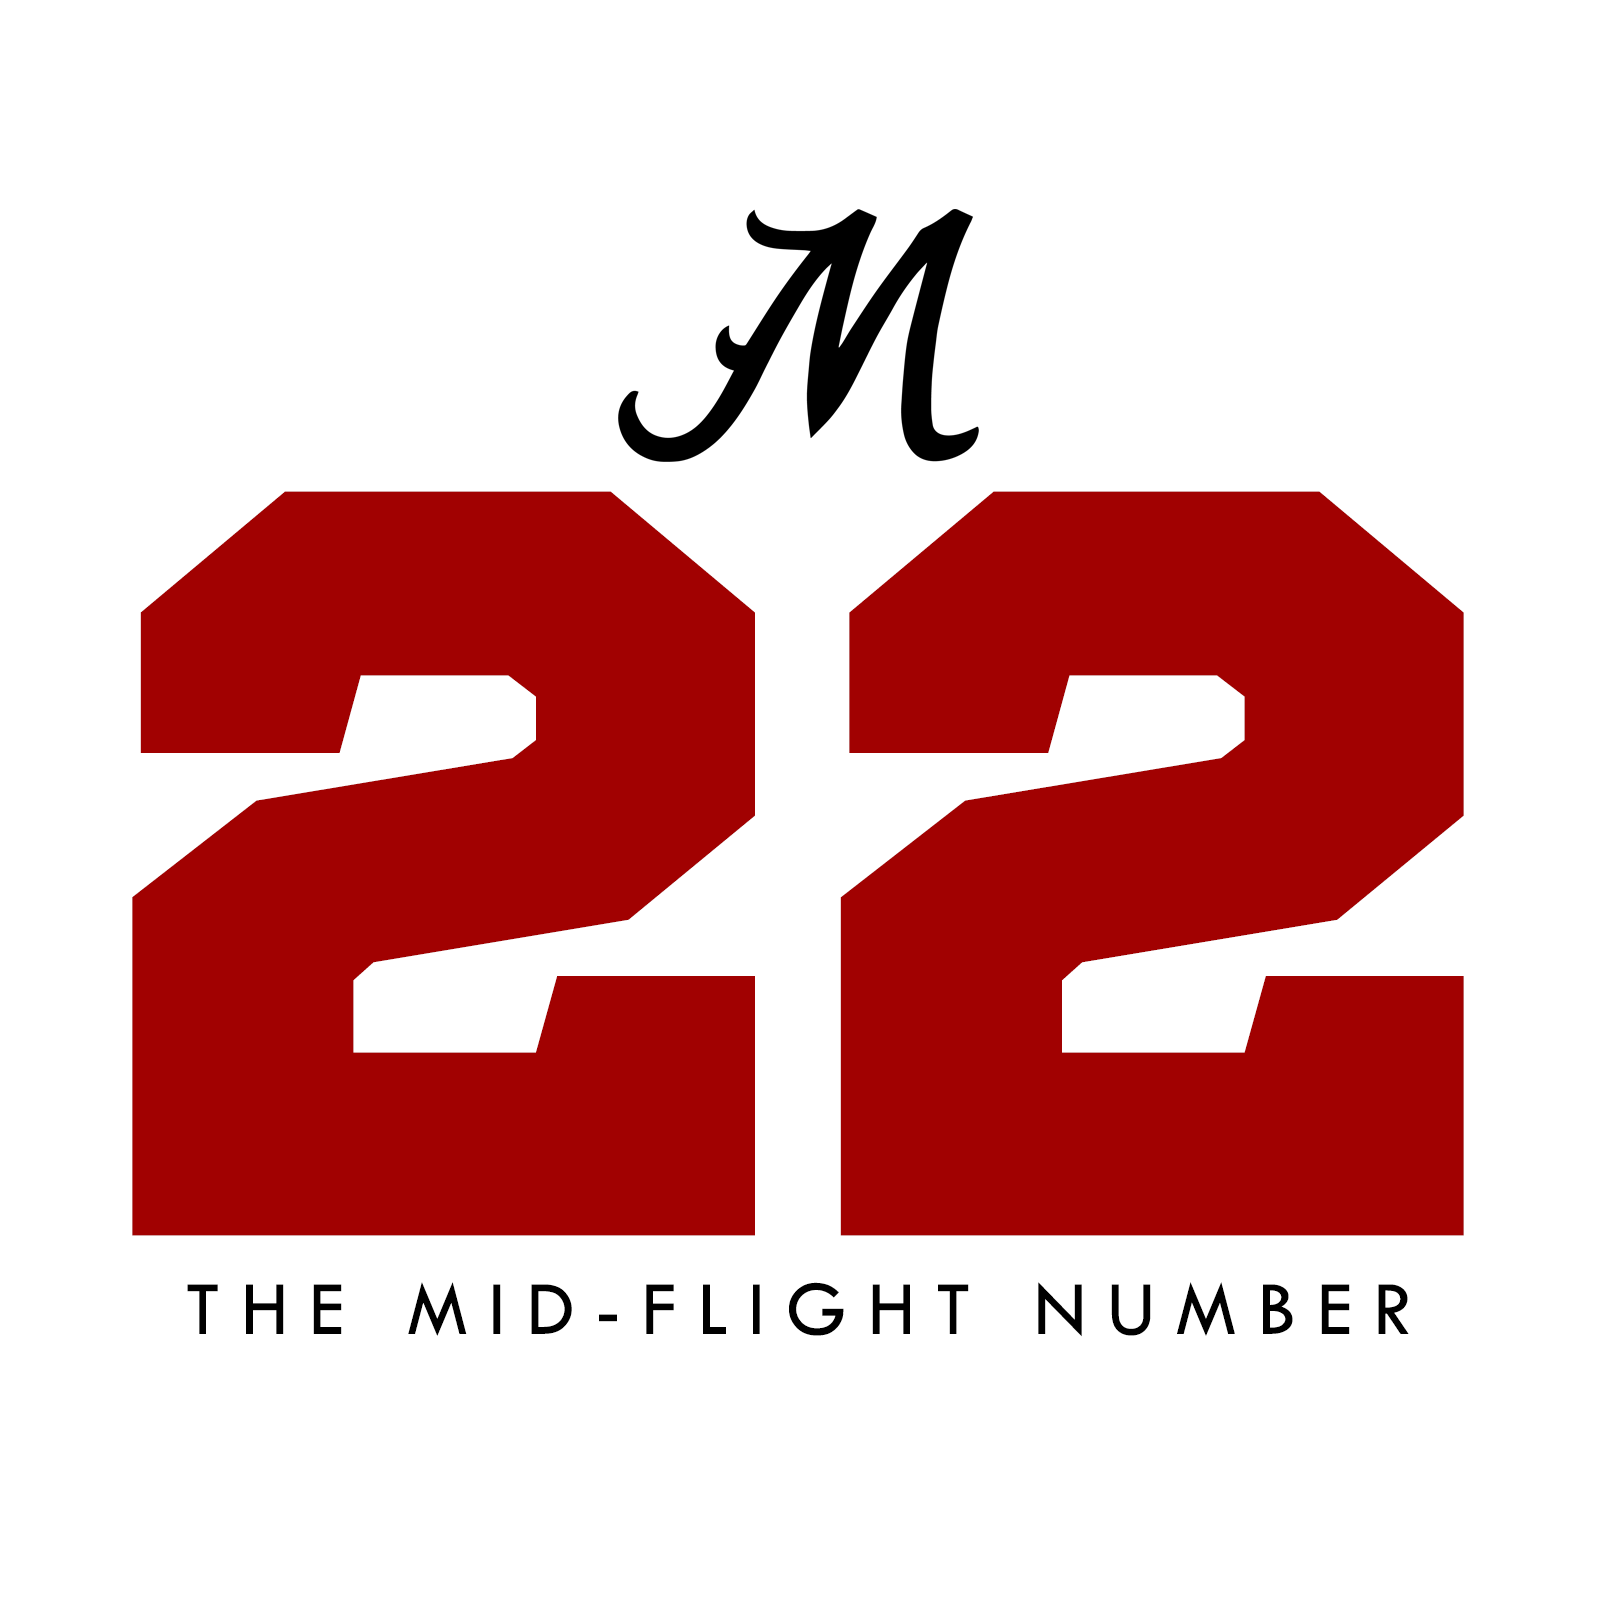 22: The Mid-Flight Number